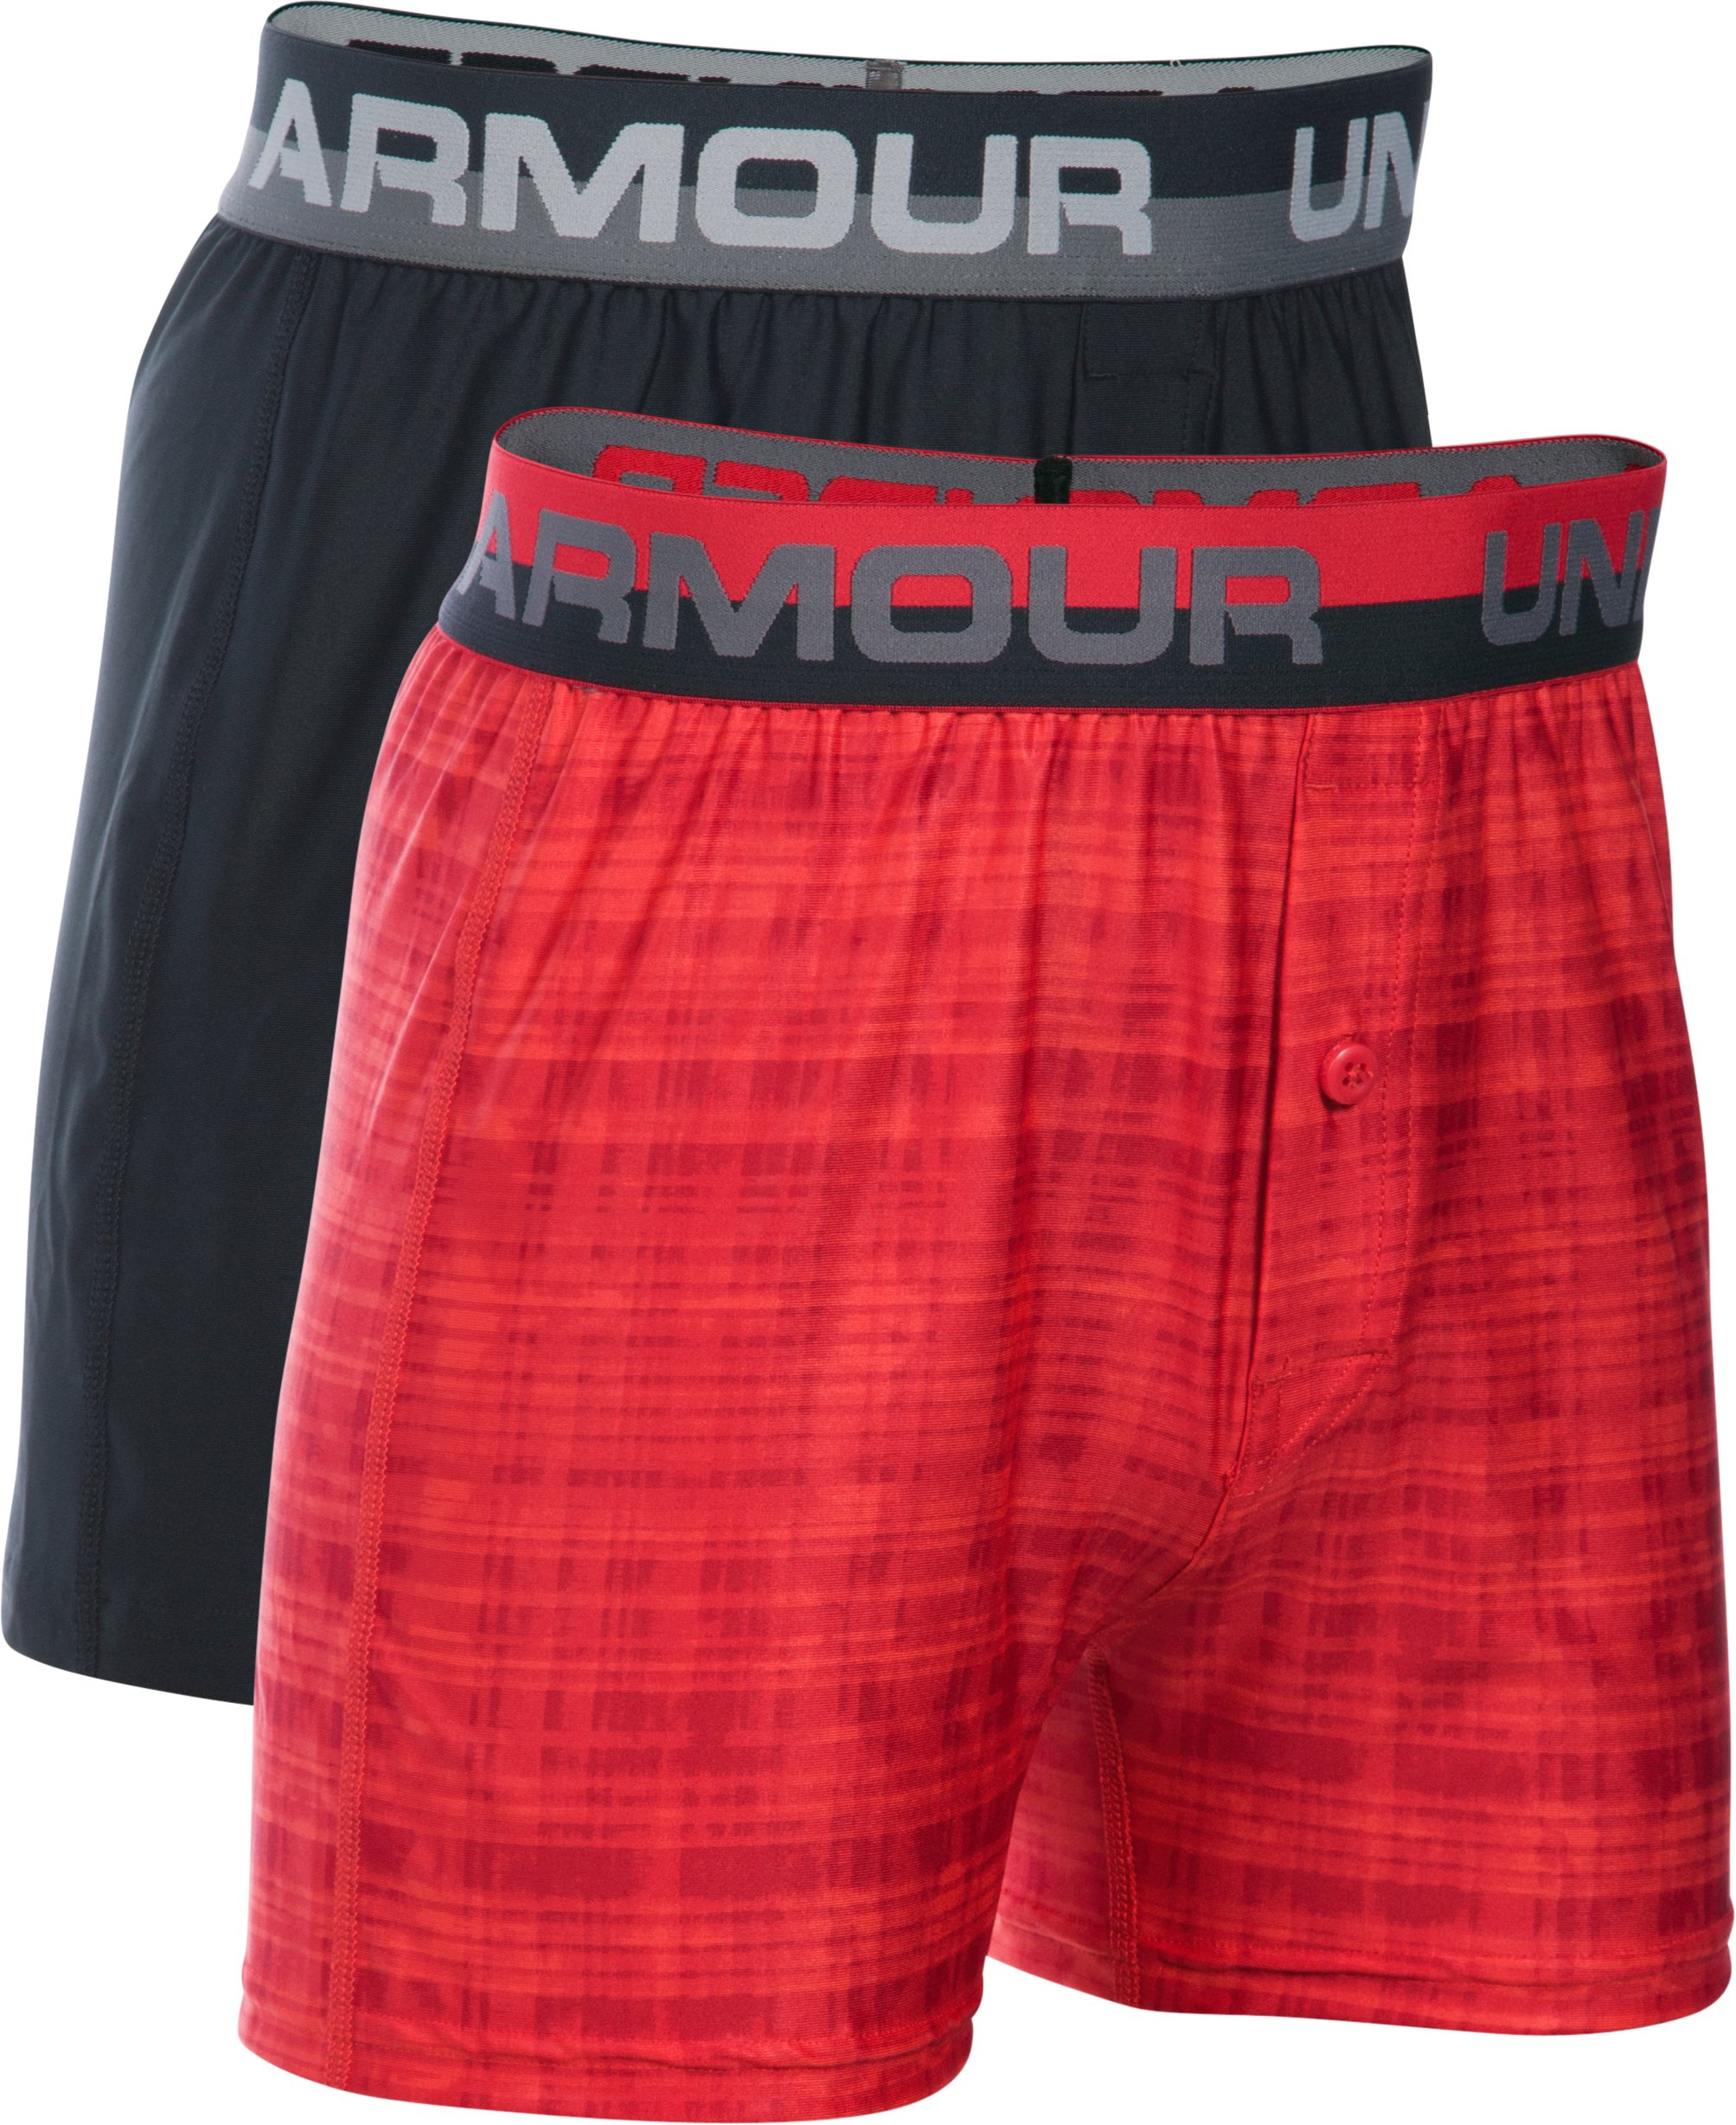 Boys' UA Original Series Boxer Shorts 2-Pack, Sultry, zoomed image